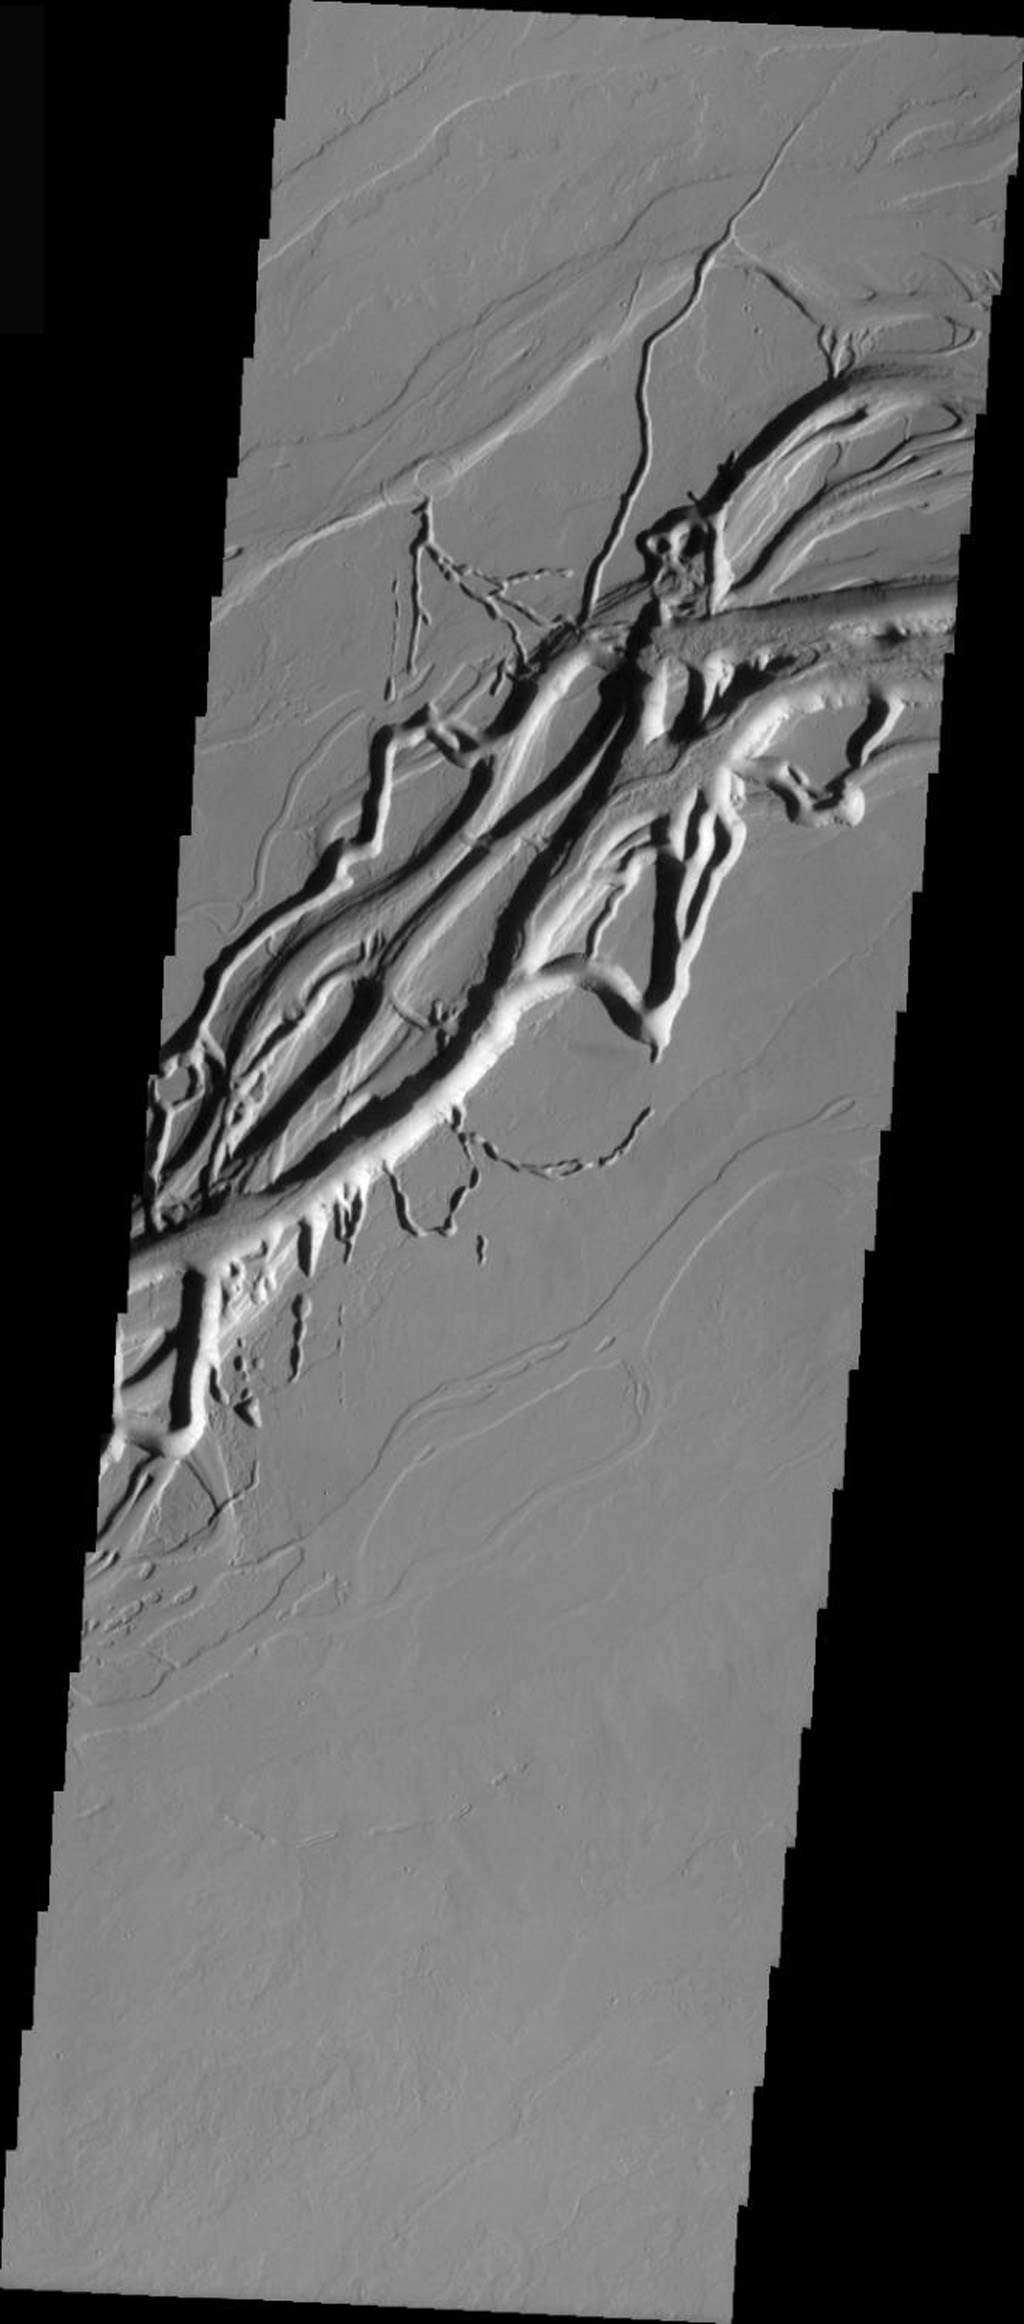 This image released on Dec 2, 2004 from NASA's 2001 Mars Odyssey shows Olympica Fossae, located closer to Alba Patera on Mars. A deep main channel and nearby collapse channels are seen.